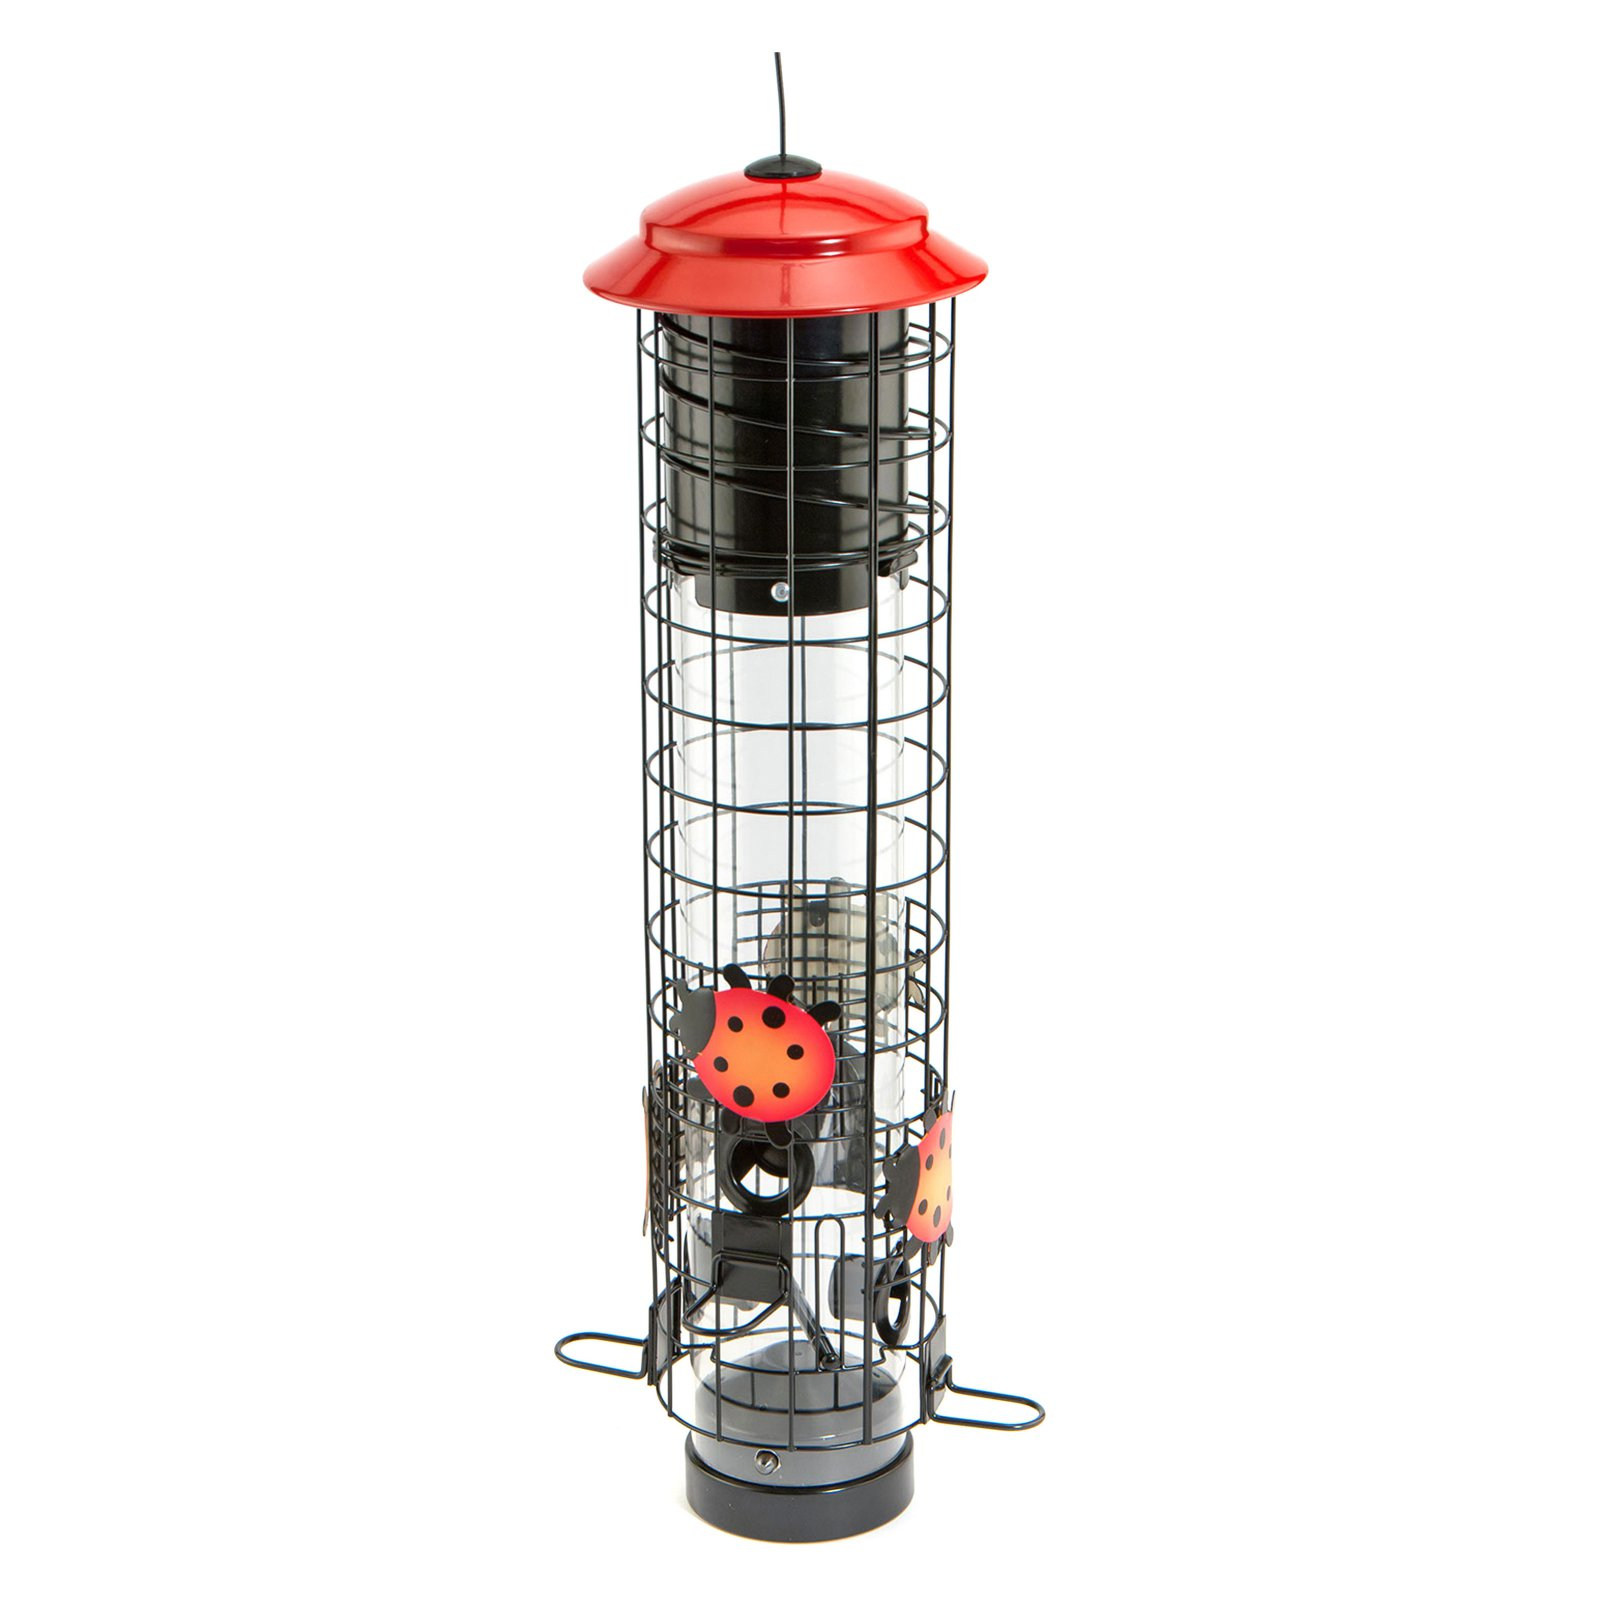 Ladybug Squirrel Resistant Tube Feeder